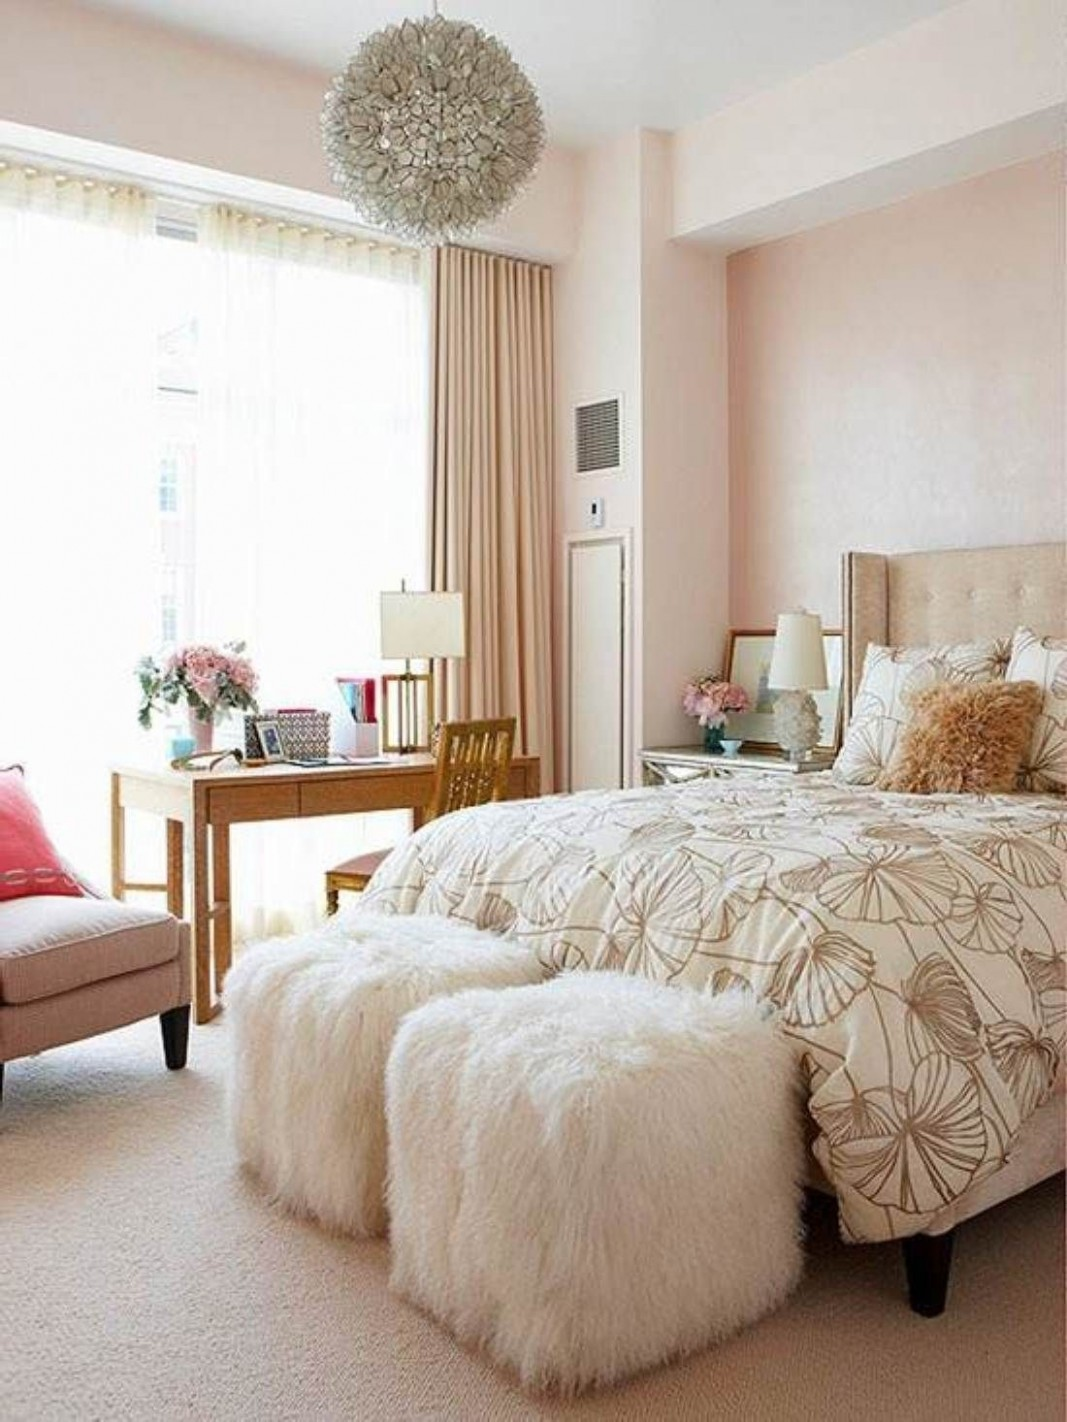 Pin by Krystal Lindsey on Home  Champagne bedroom, Elegant  - Bedroom Ideas For Women